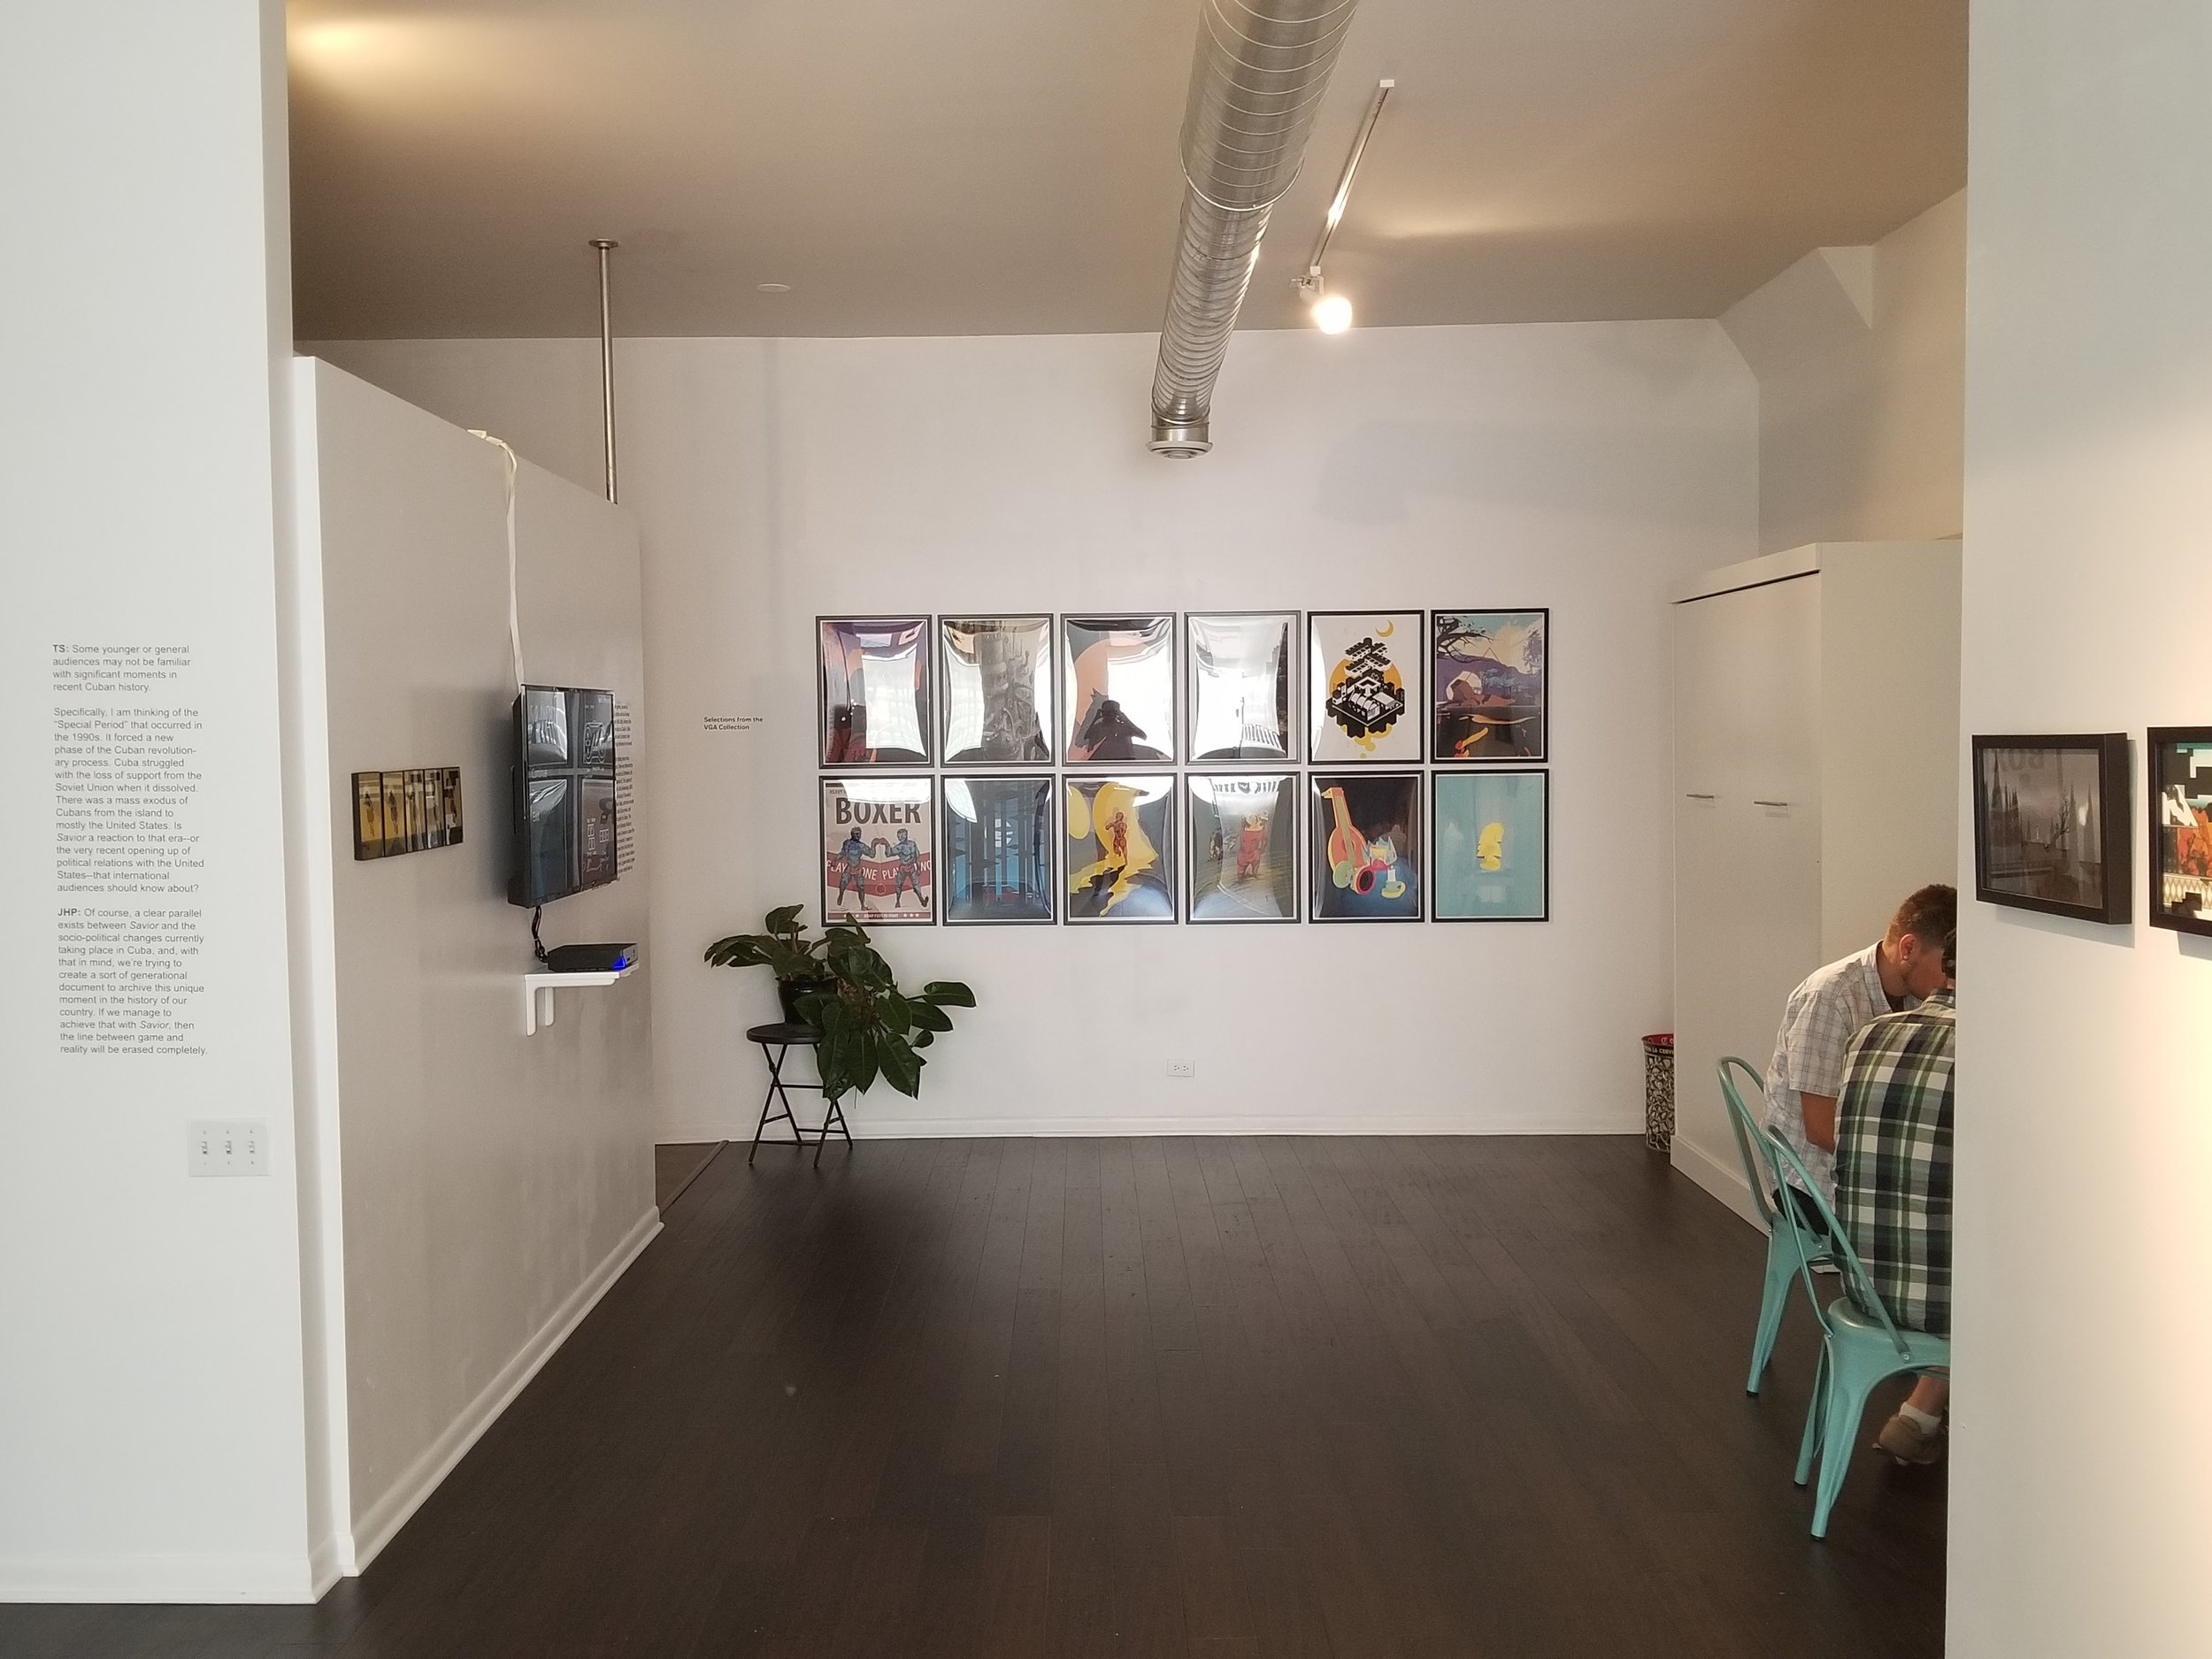 Inside the Video Game Art Gallery